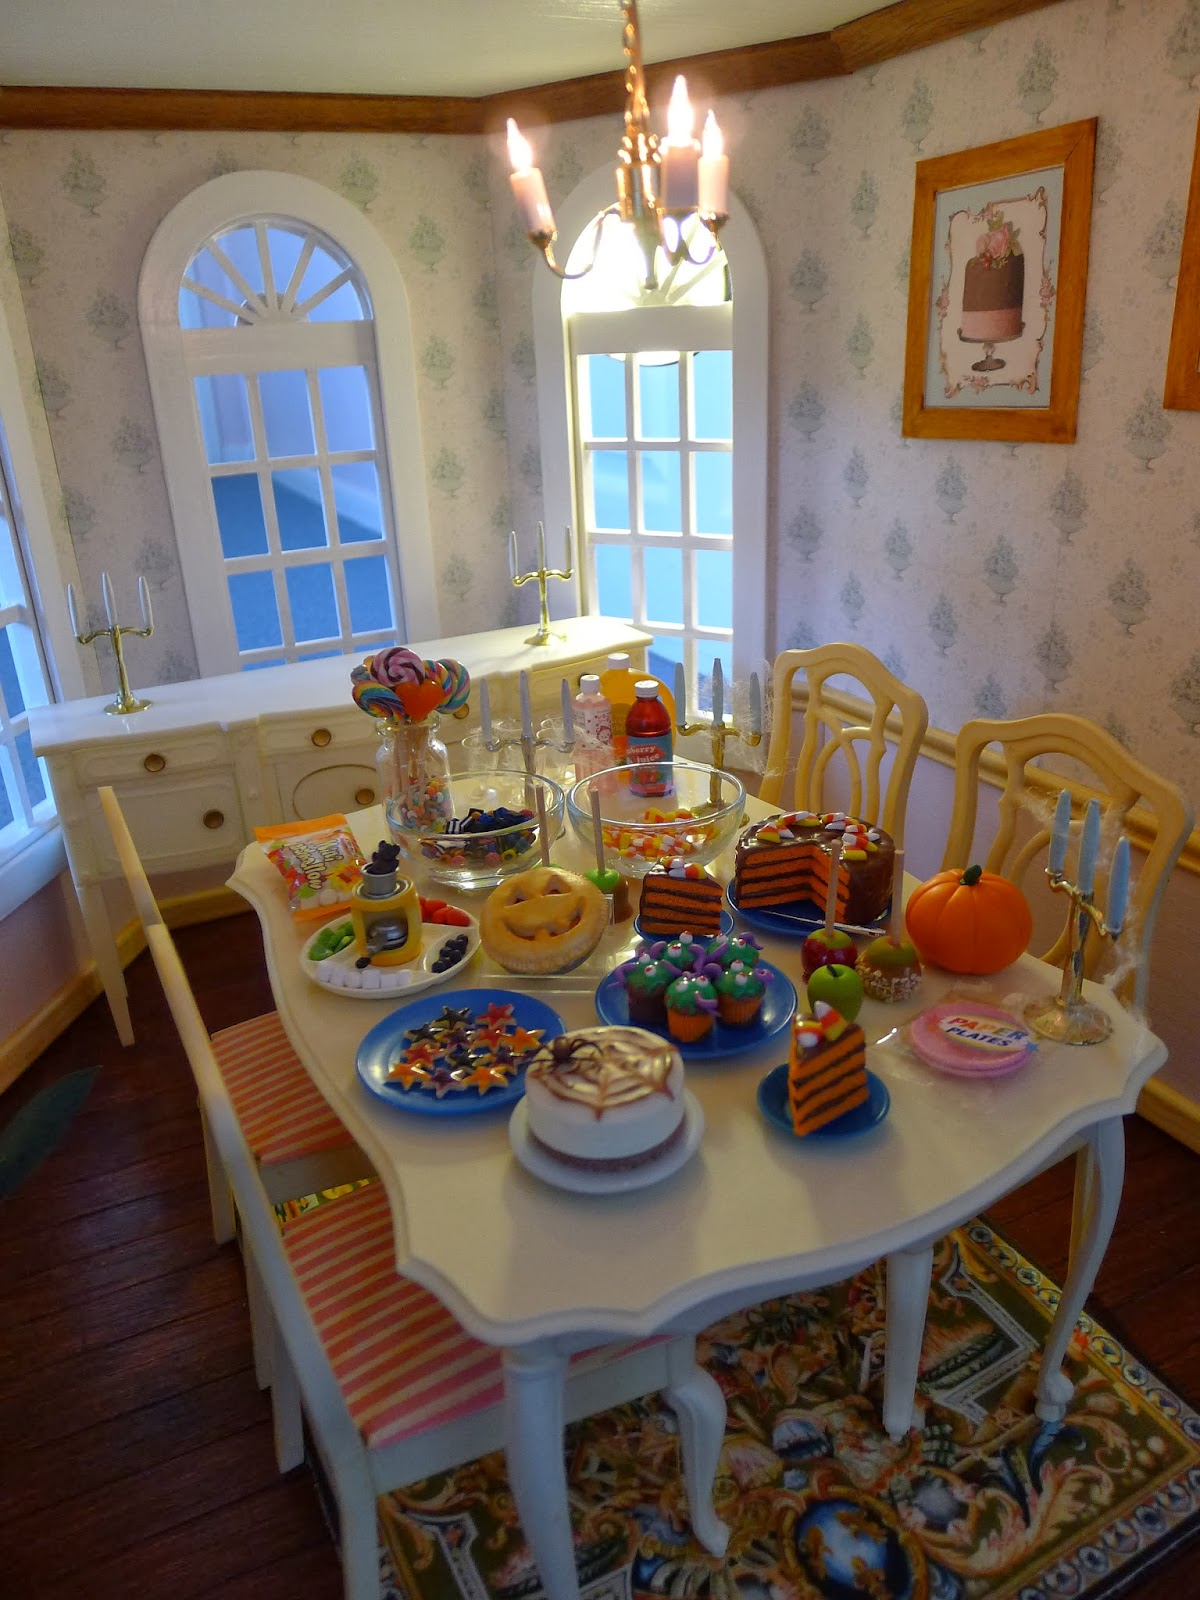 Littlest sweet shop new in halloween specials cheesecake for Hades dining table th8